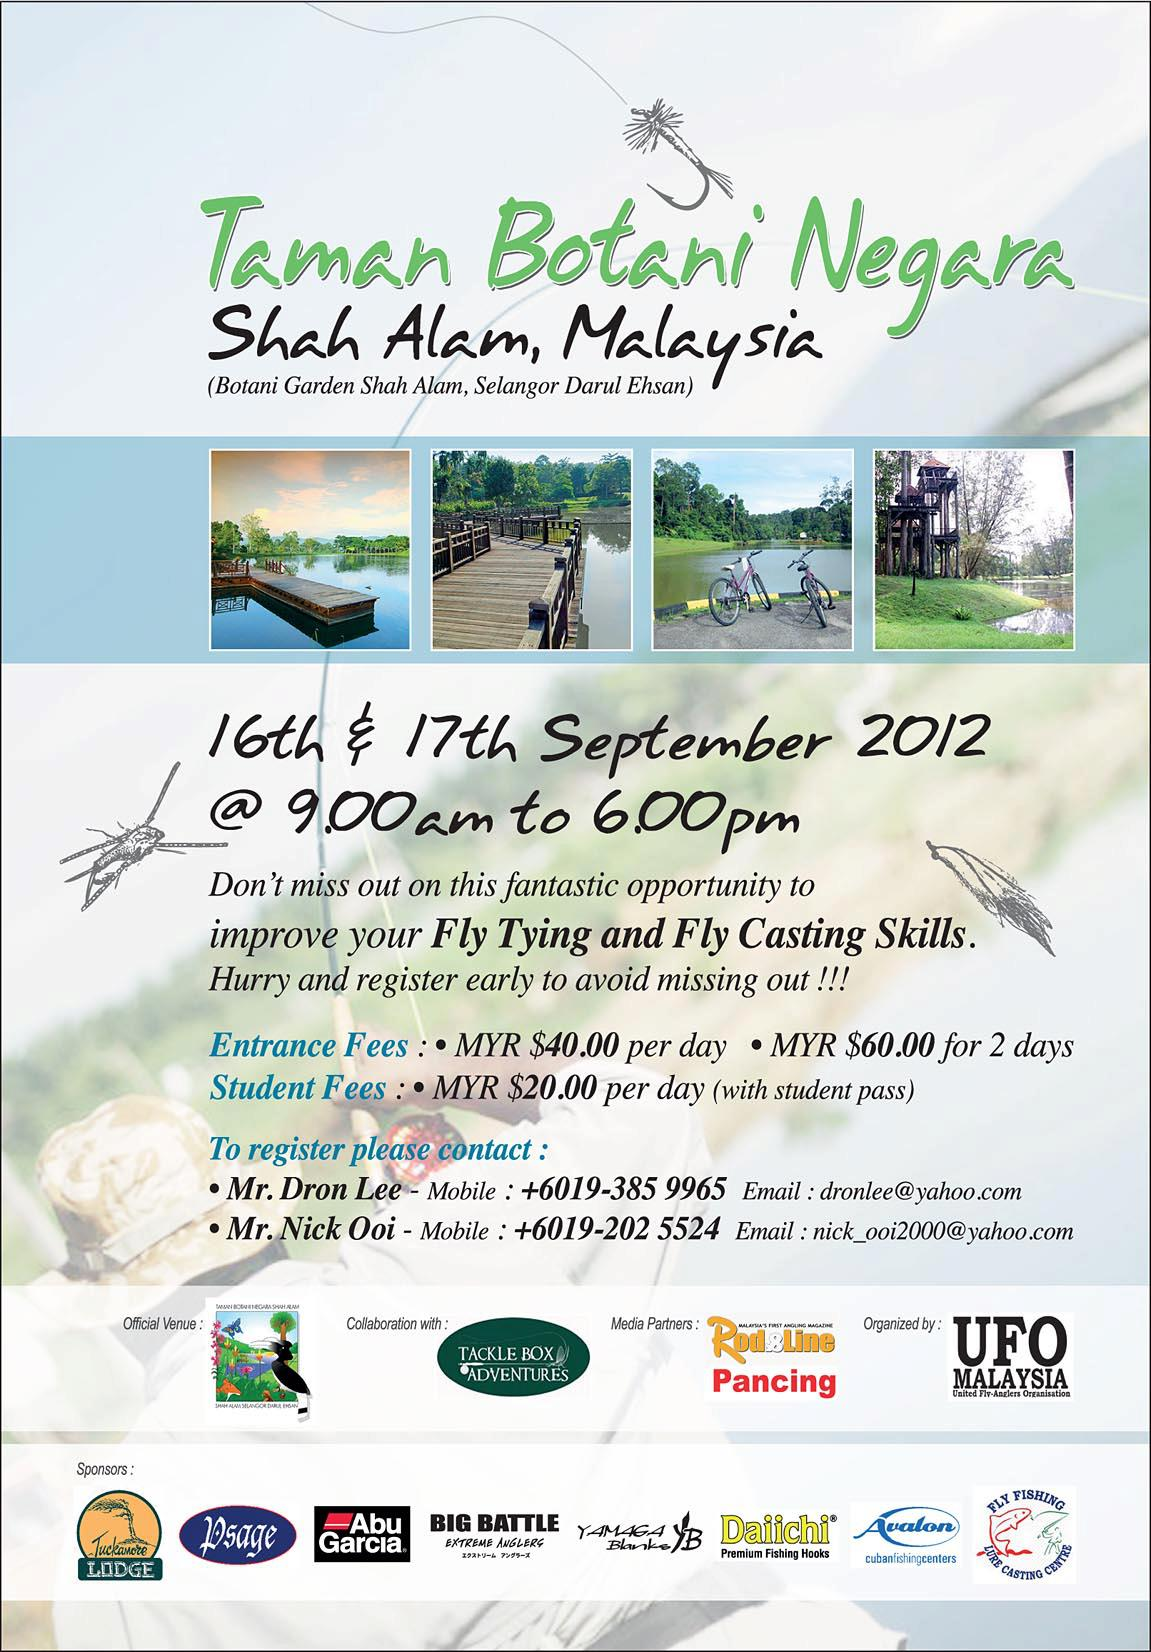 Freshwater fish in malaysia - Share This